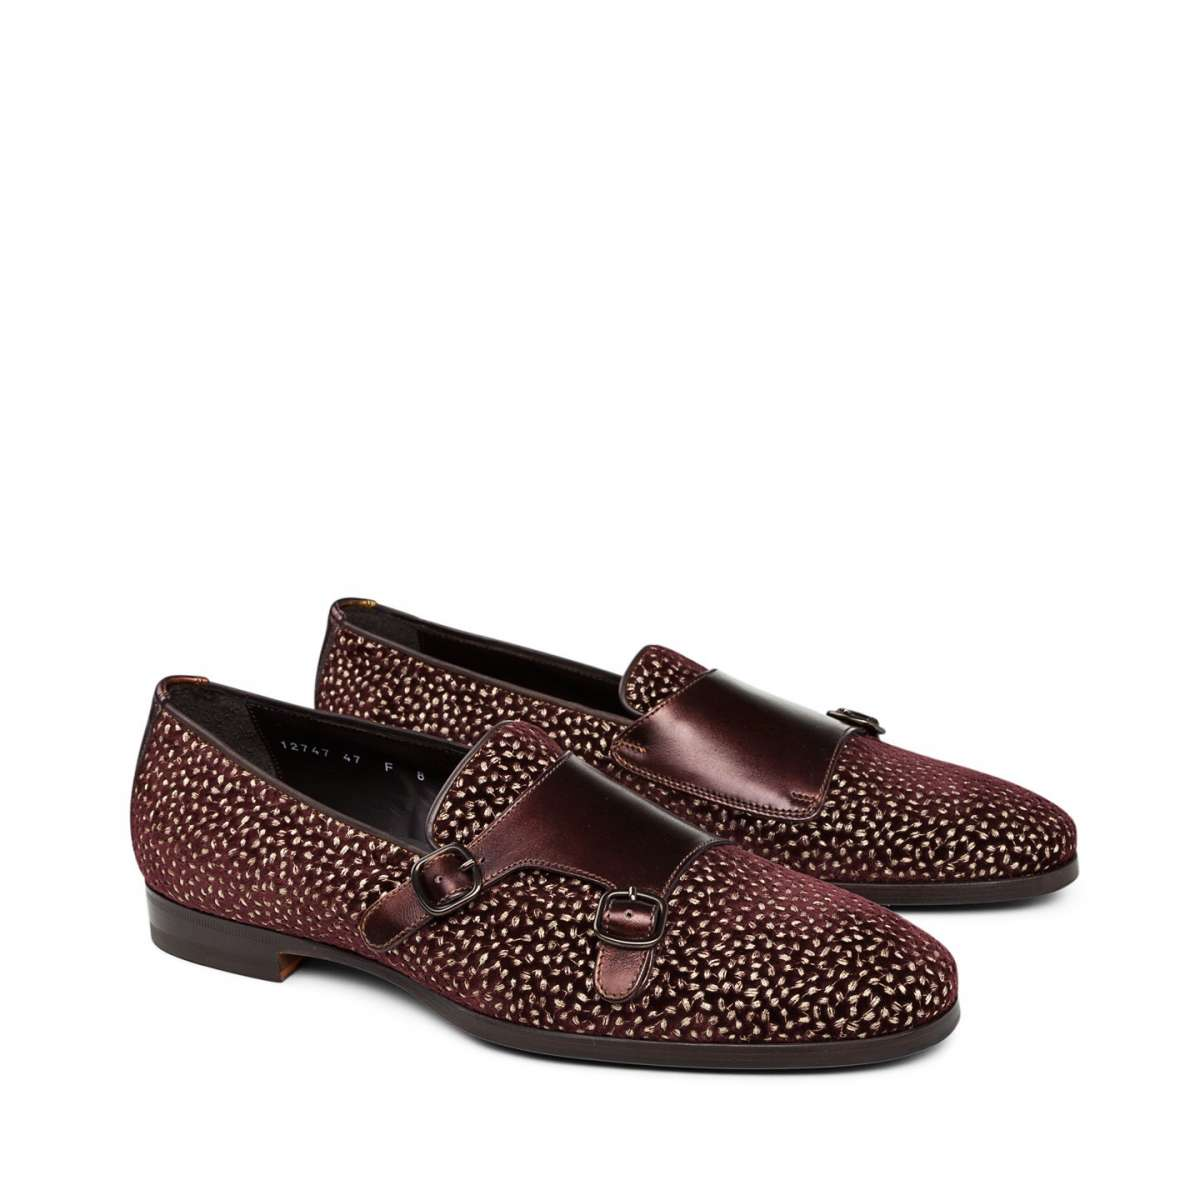 Slipper burgundy